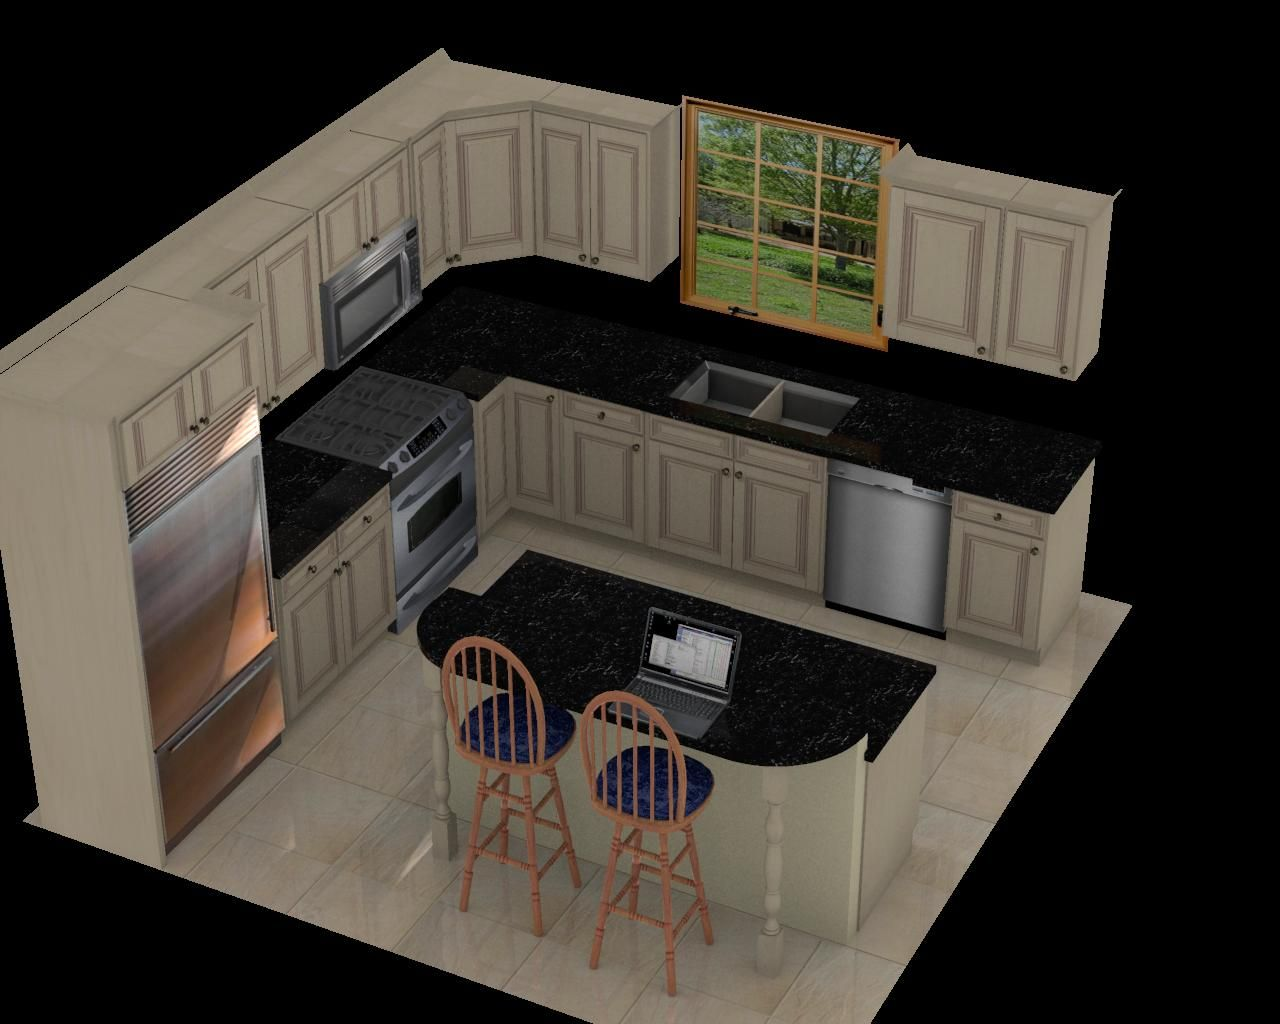 Luxury 12x12 kitchen layout with island 51 for with 12x12 for 12 x 15 kitchen layout